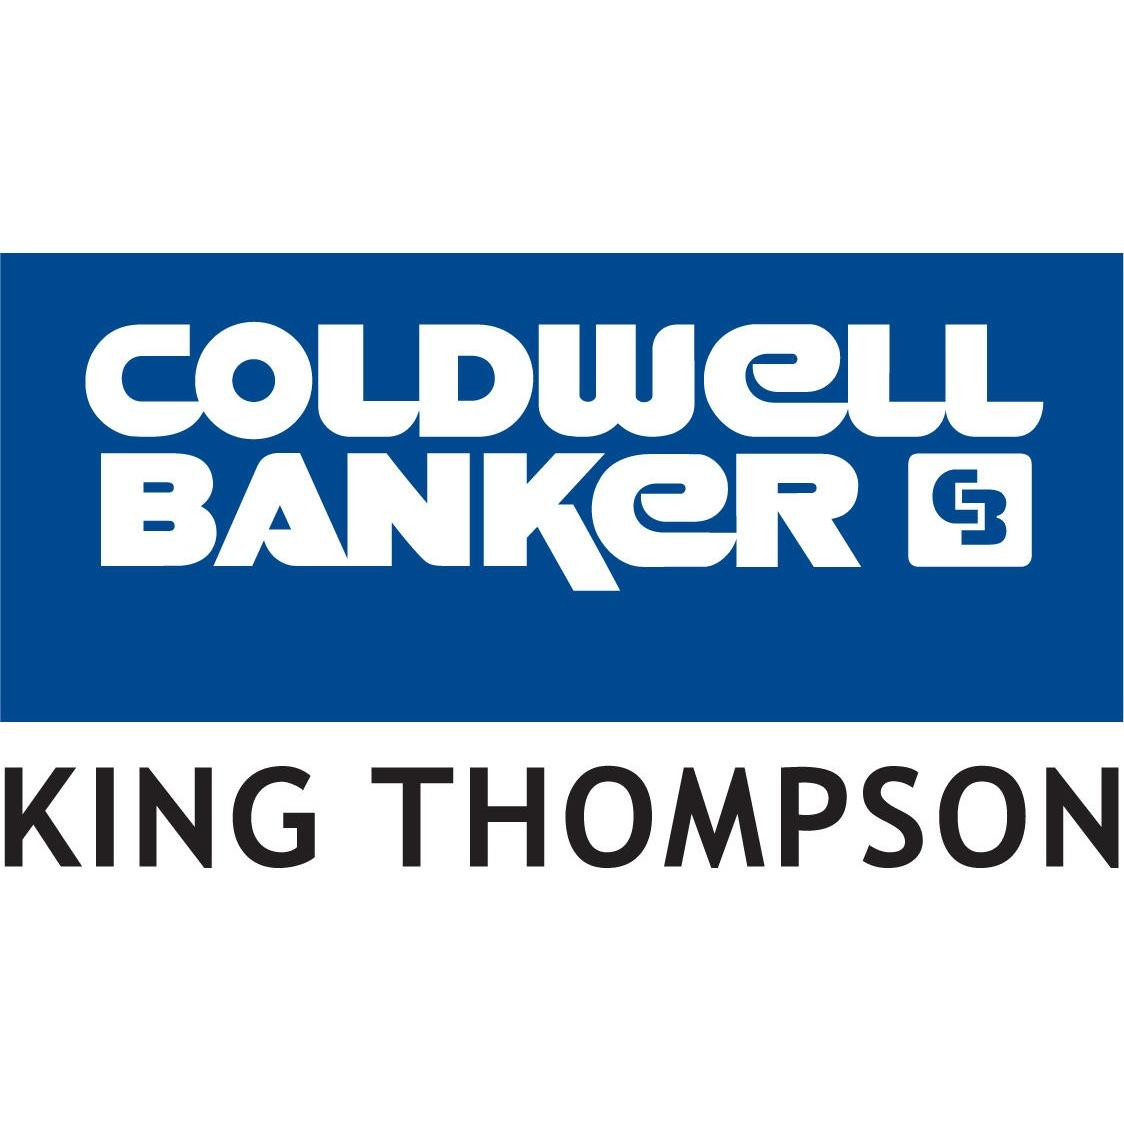 Connie Anzuini | Coldwell Banker King Thompson